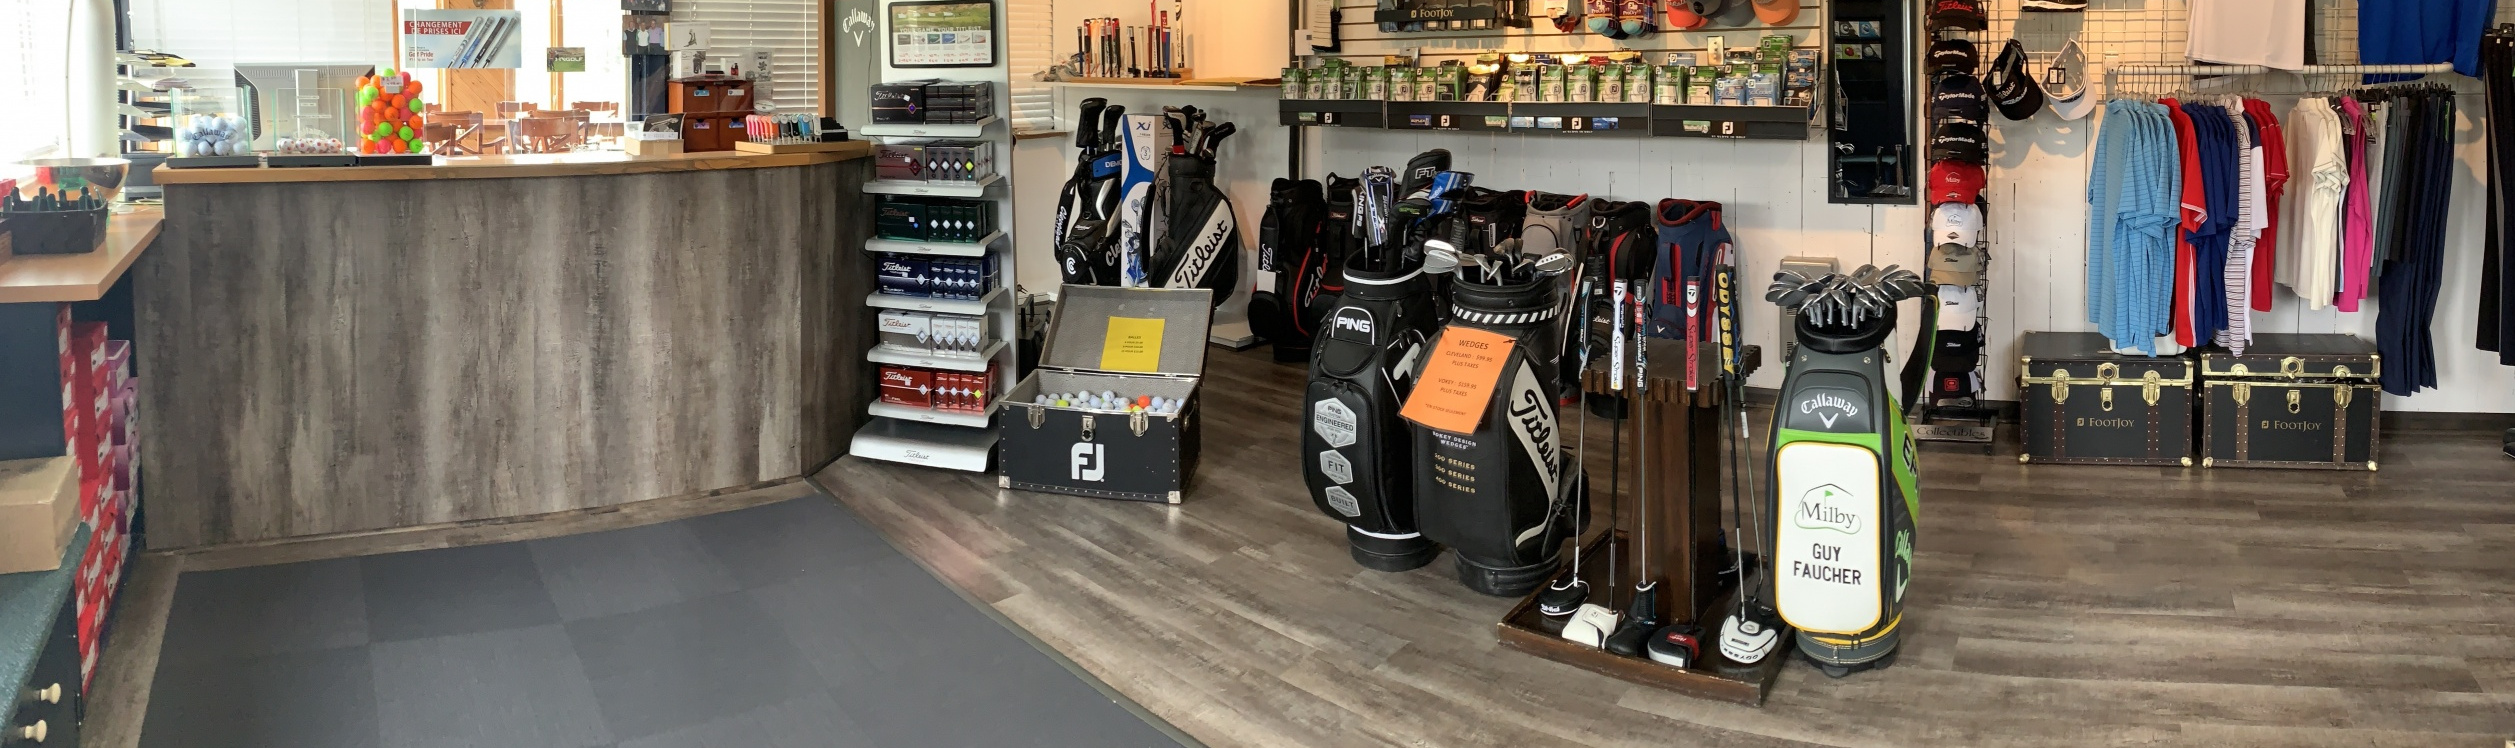 Boutique du pro golf Milby Guy Faucher